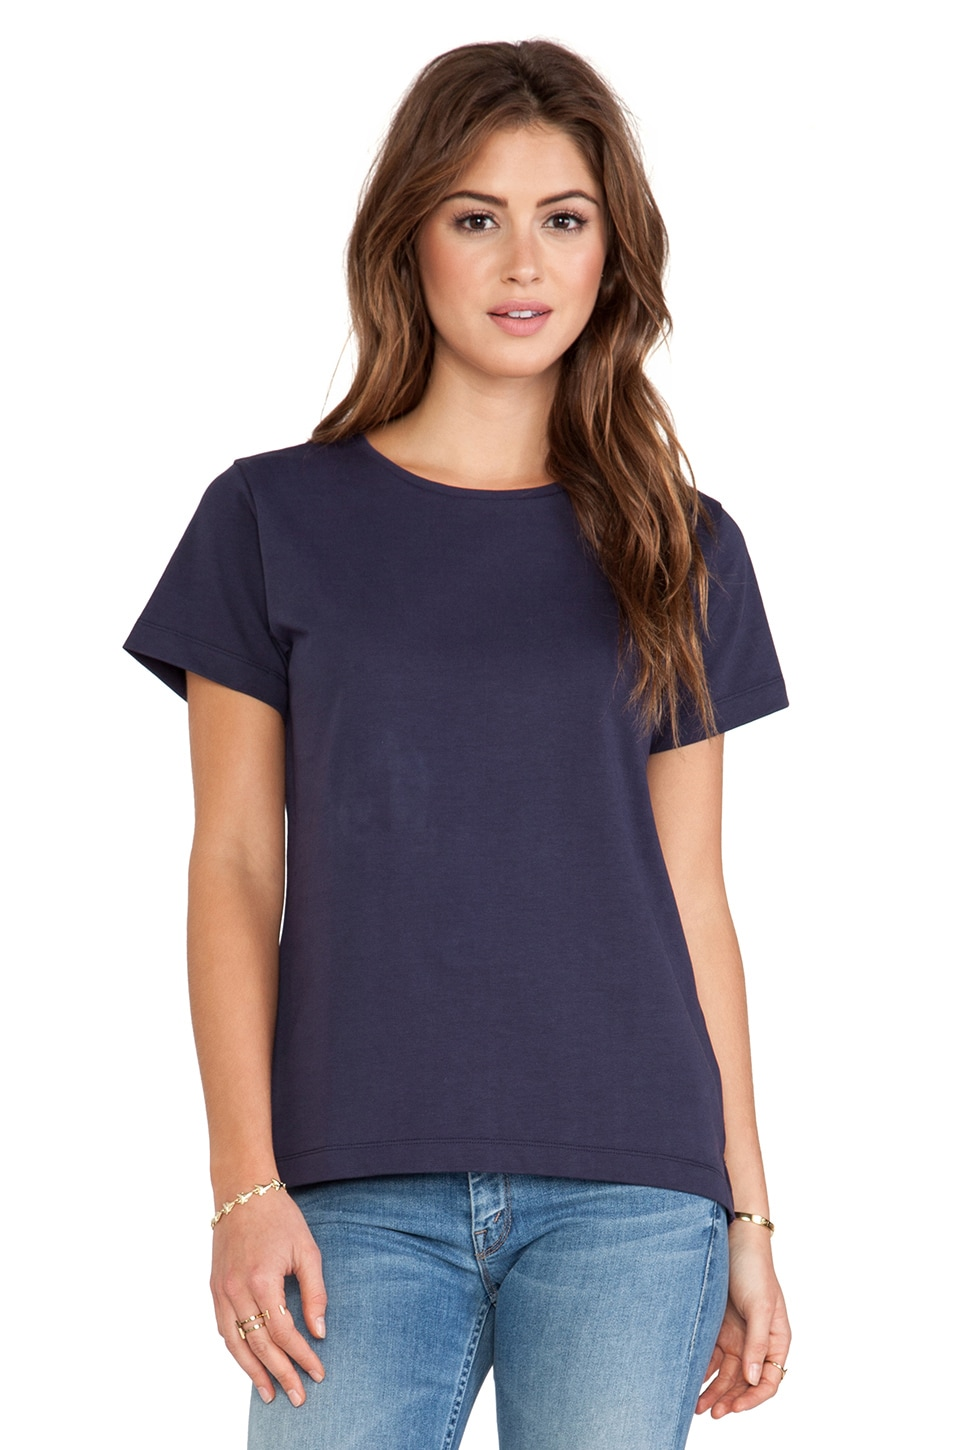 Acquaverde Basic Tee in Indigo